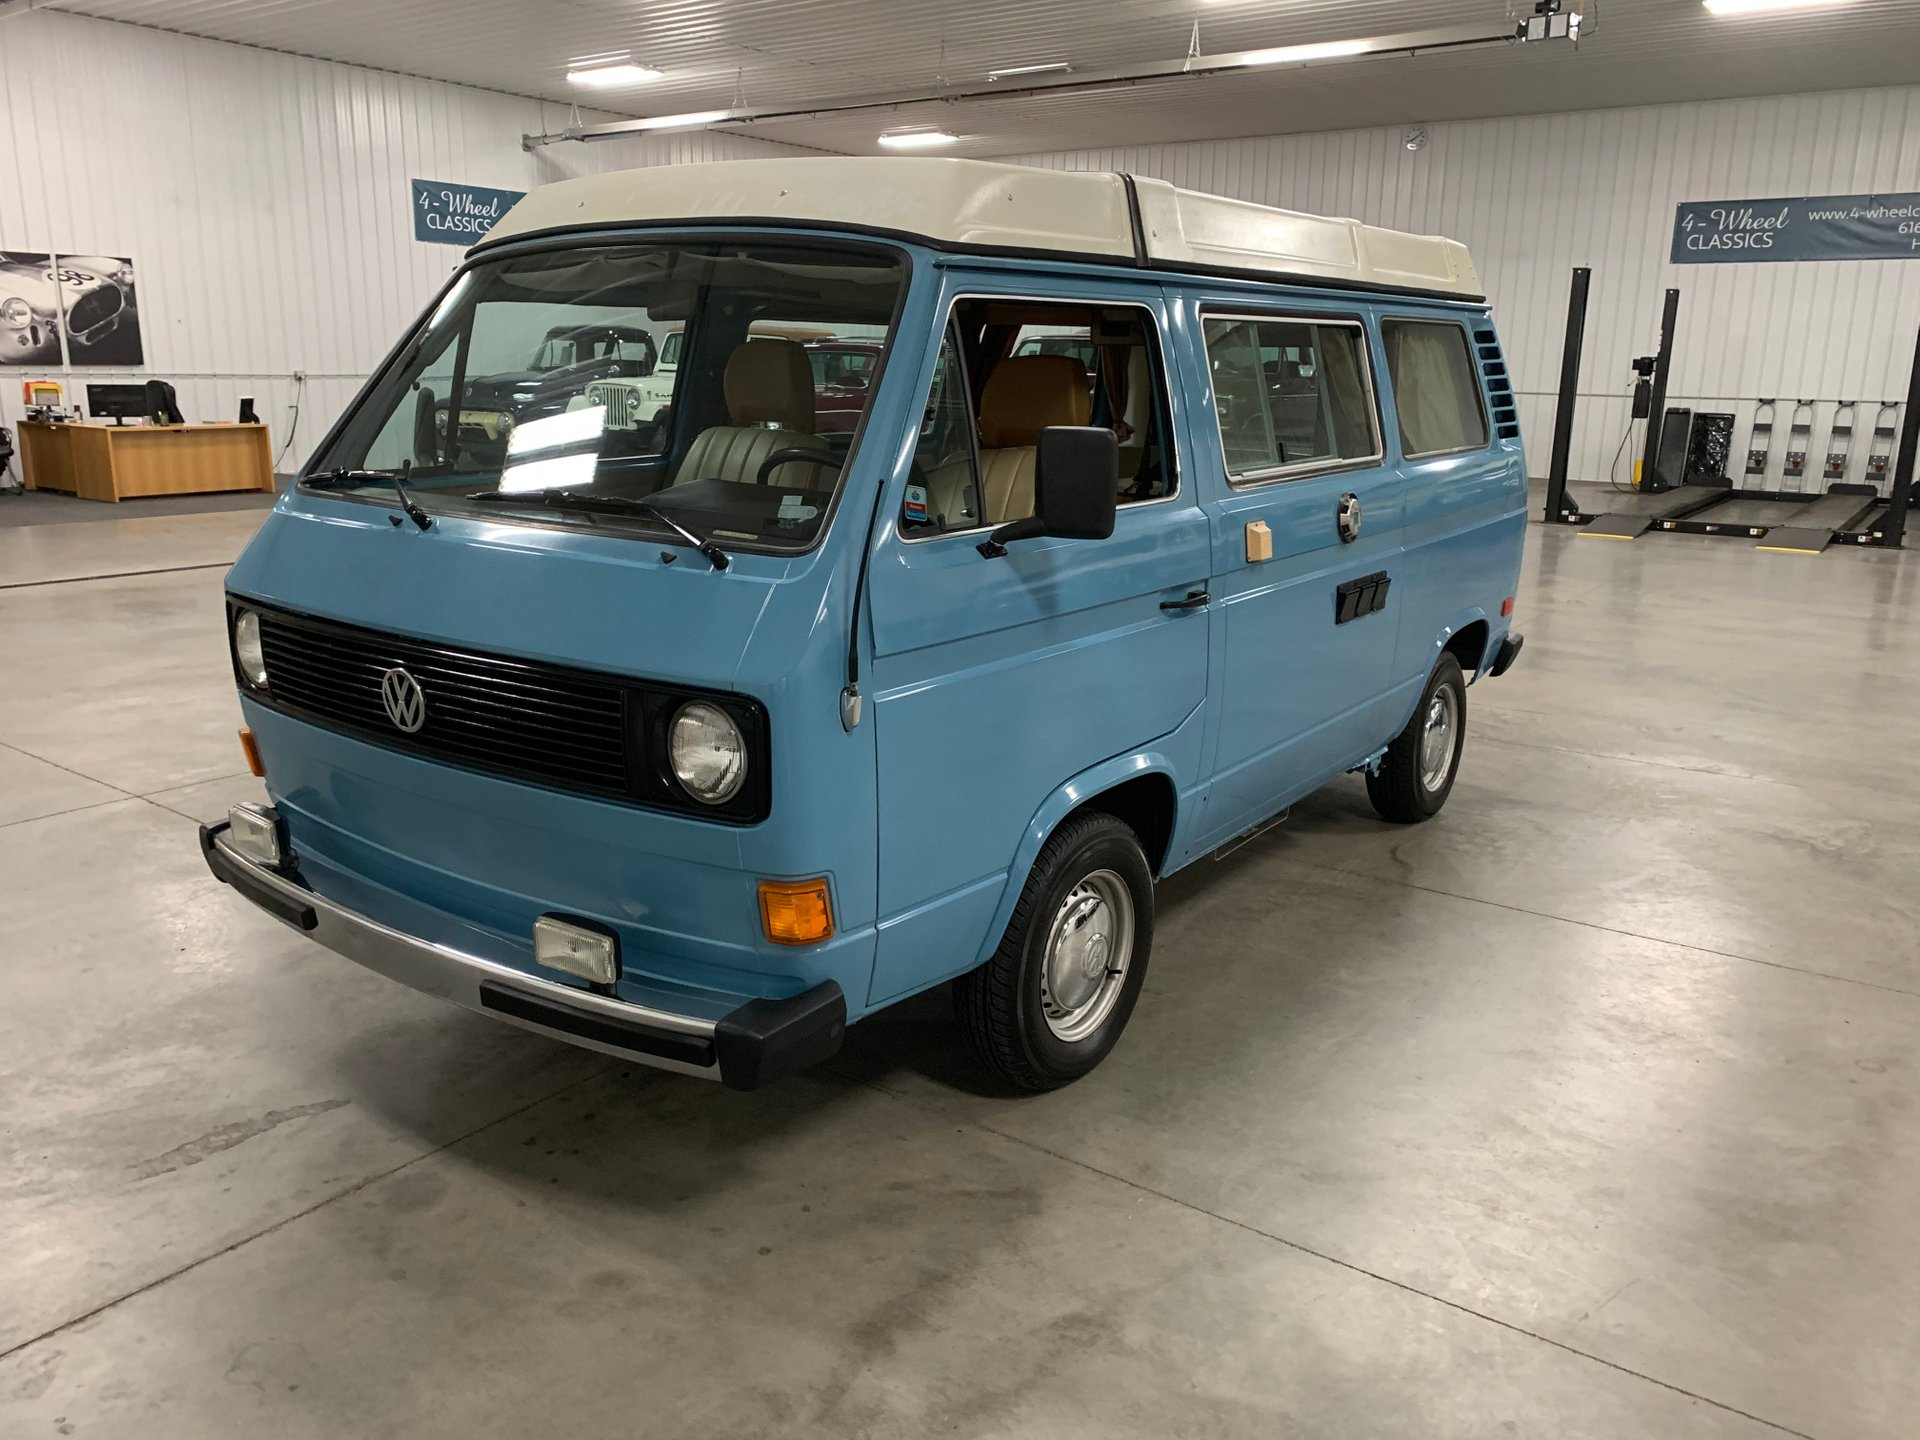 1980 Volkswagen Vanagon 4 Wheel Classics Classic Car Truck And Suv Sales